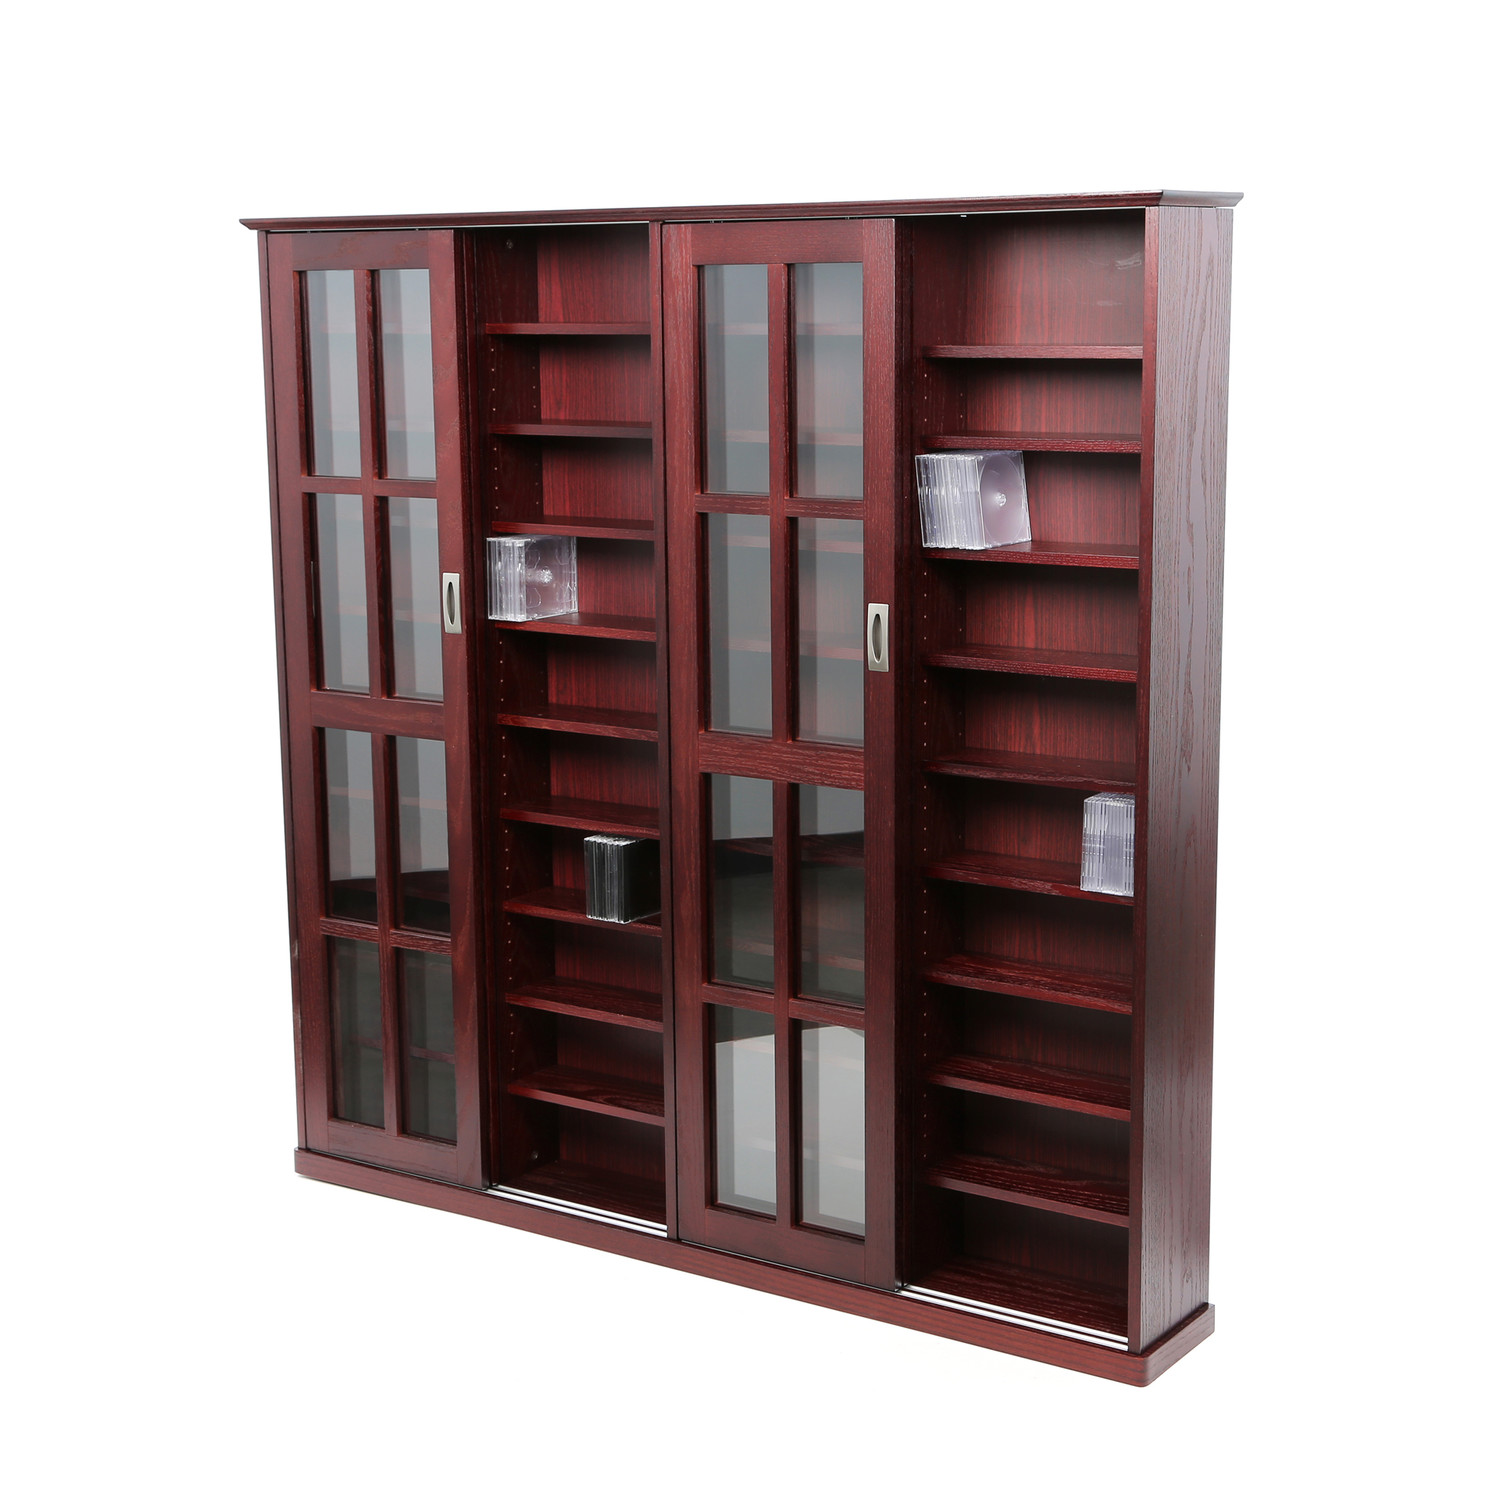 Admirable Wooden Storage Cabinet With Glass Doors Made Of Cherry Wood